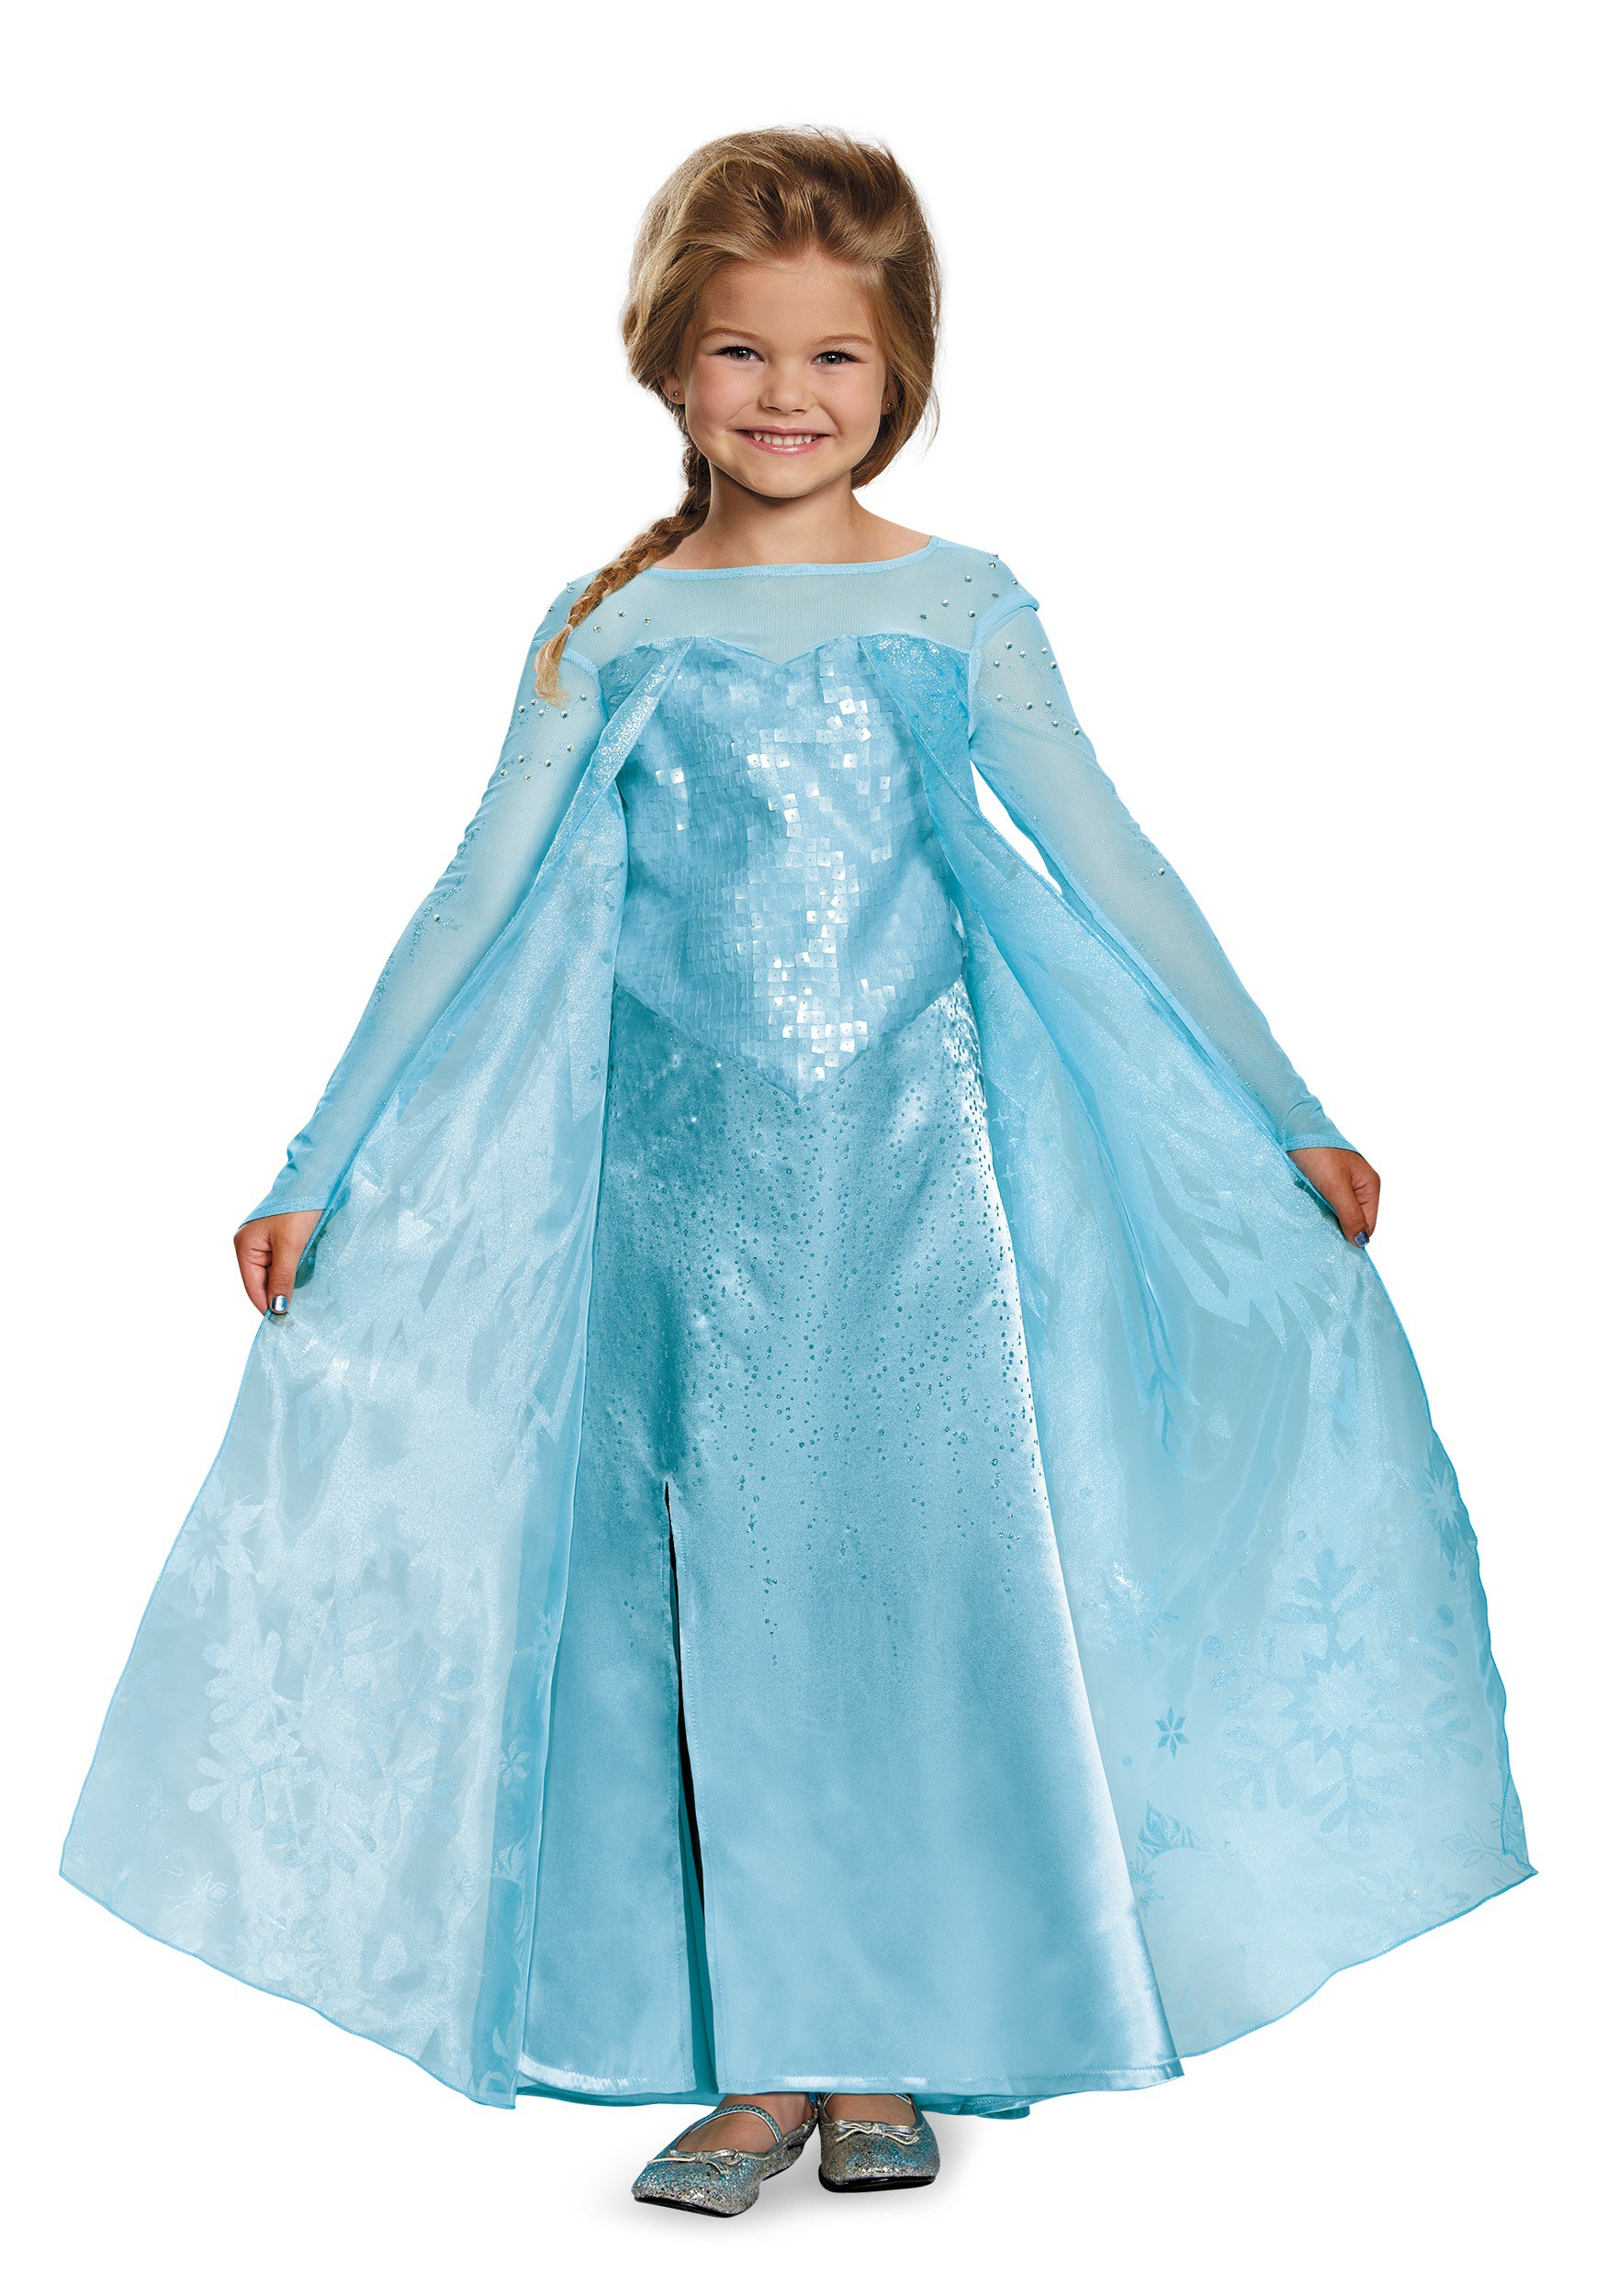 Buy frozen elsa dress